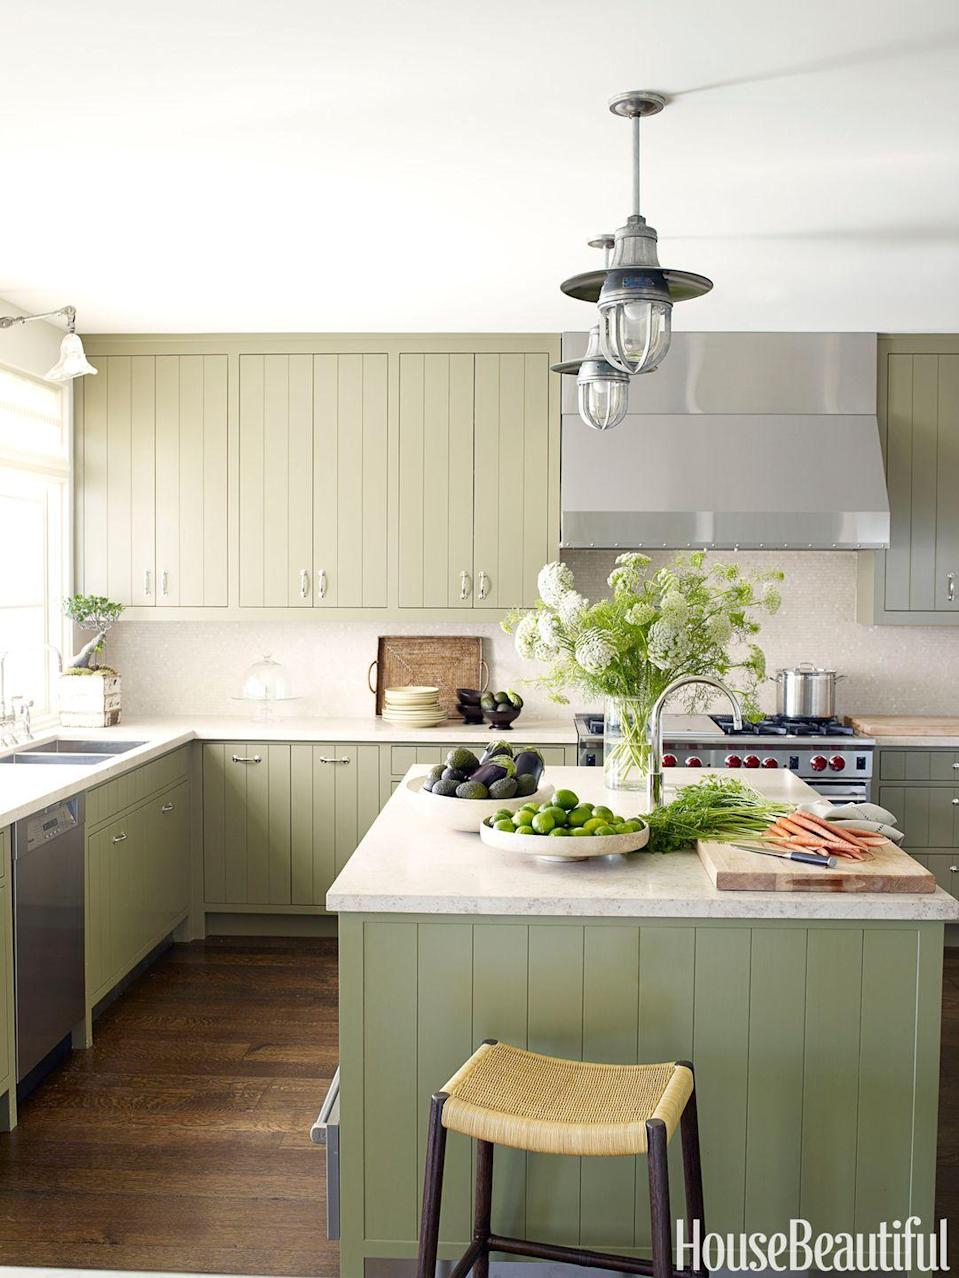 "<p>Create a modern Provincial kitchen with minimalist grooved cabinetry in a <a href=""https://www.housebeautiful.com/room-decorating/colors/a14516597/sage-trend-2018/"" rel=""nofollow noopener"" target=""_blank"" data-ylk=""slk:soft custom sage green"" class=""link rapid-noclick-resp"">soft custom sage green</a> and limestone countertops. The kitchen feels simultaneously masculine and warm & inviting. </p>"